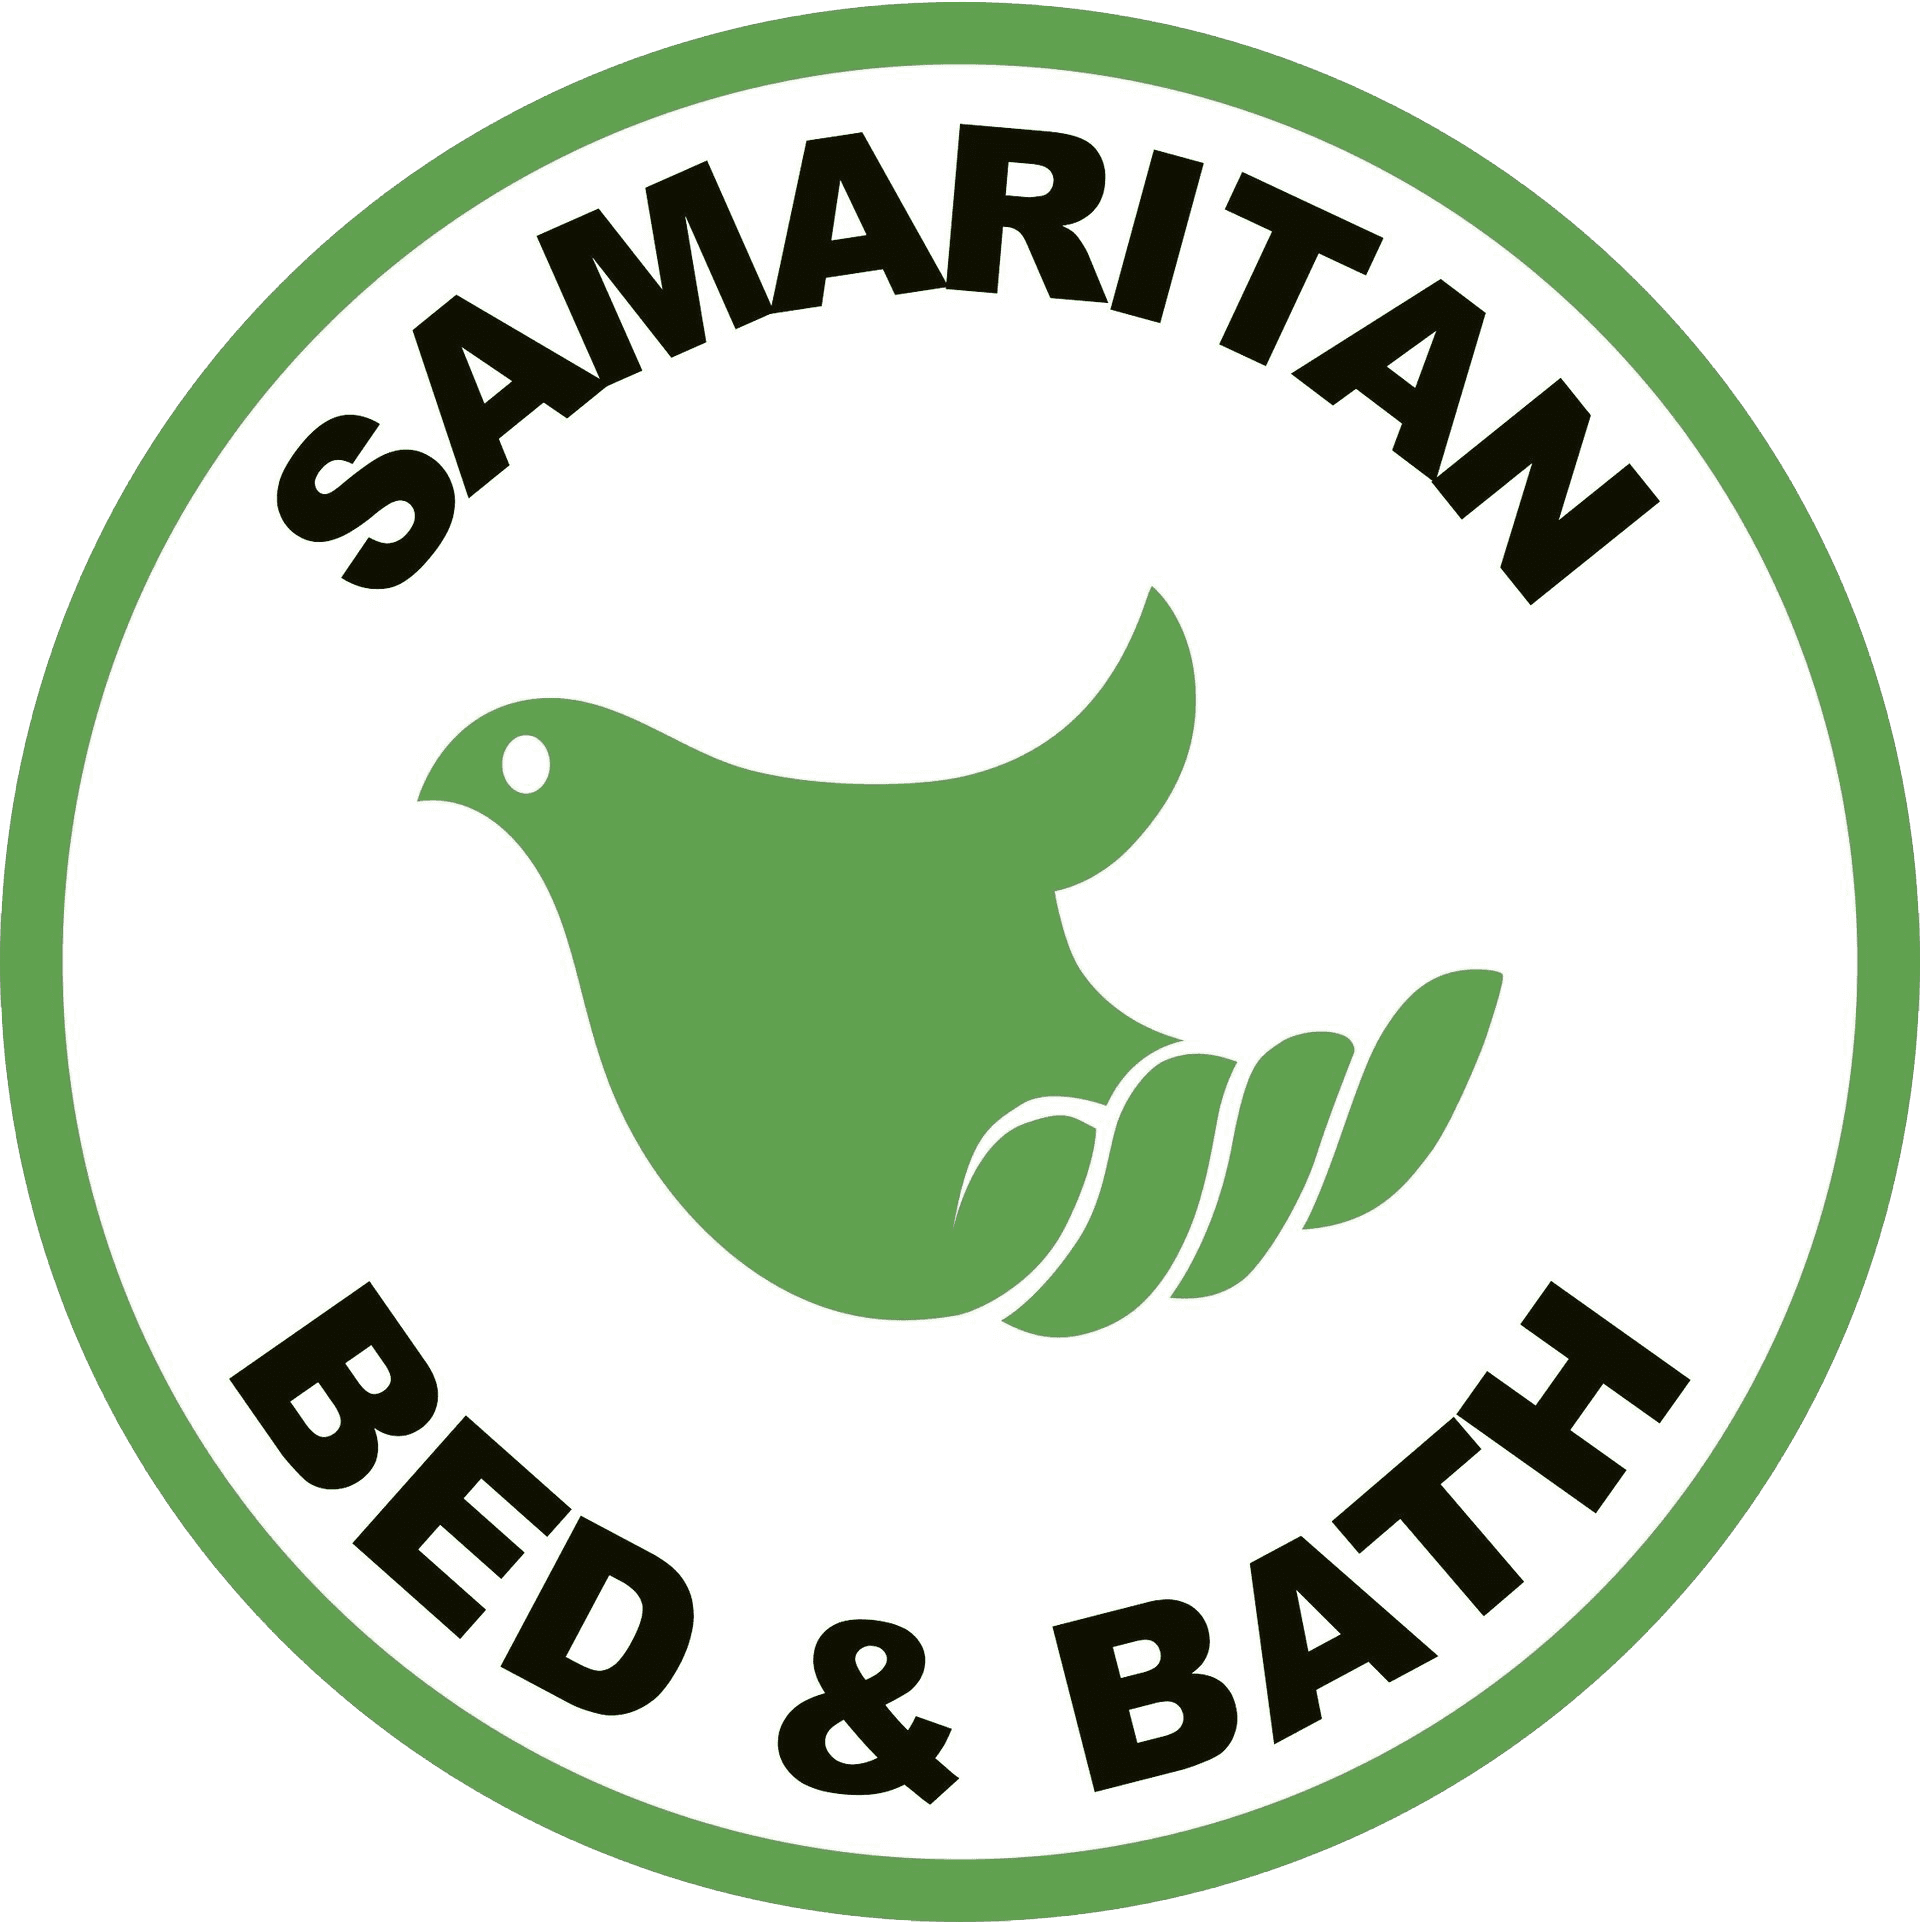 Samaritan Bed and Bath Services, Inc - Logo